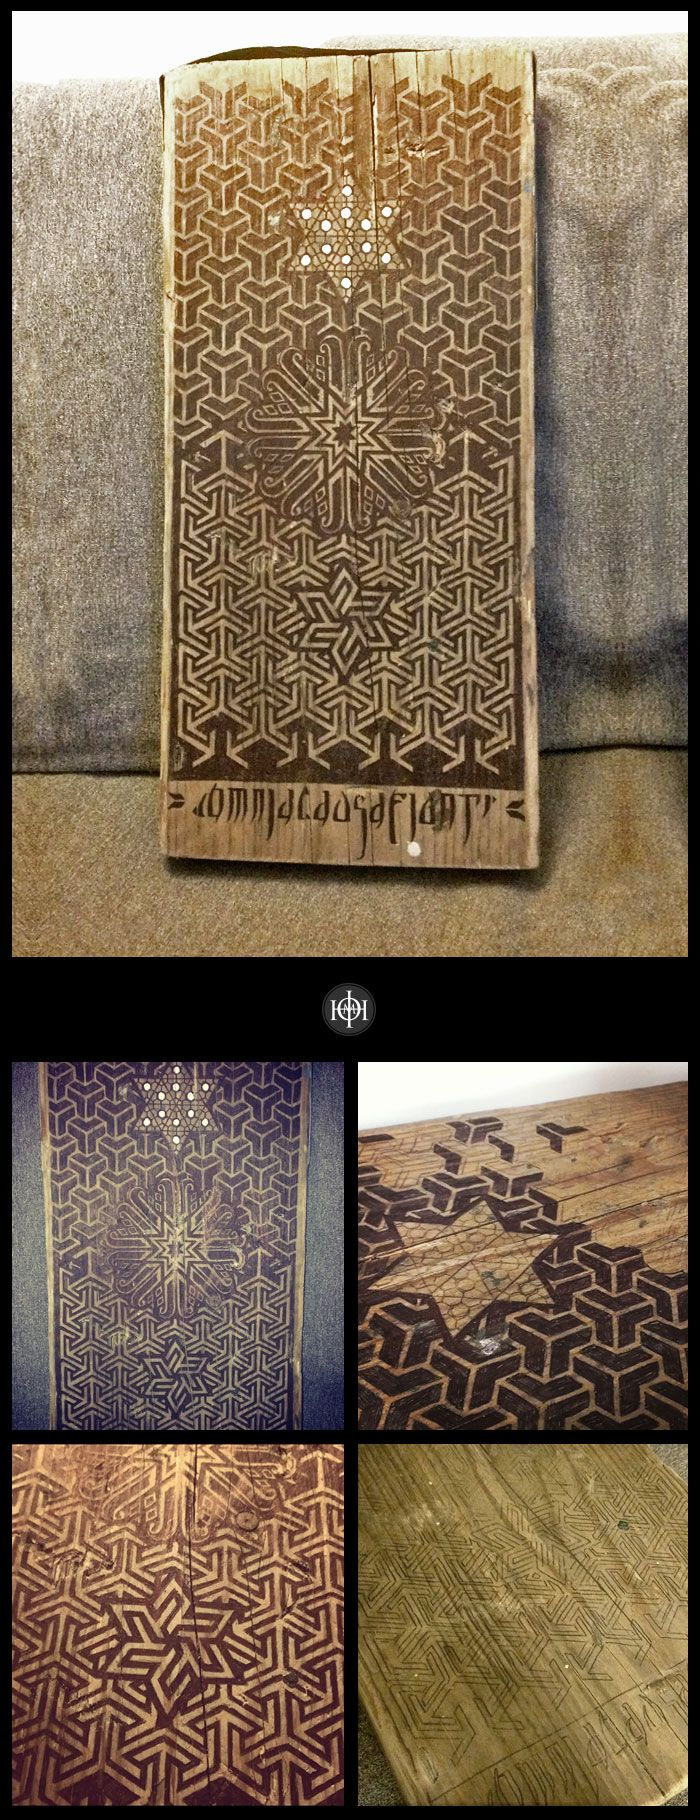 "This artwork is composed by multiple patterns and modules inspired to Islamic Art and Romanesque ornament found on the walls of the Pisa Cathedral. The writing at the bottom means ""everything happens for a reason"" from latin: Omnia Causa Fiunt. The entire artwork has been designed with biro black pen on a old timber. www.imhoprogress.com #inlay, #illustration, #ornament, #pattern, #ancient art, #pattern, #design, #ornamental, #islamic, #pisa"